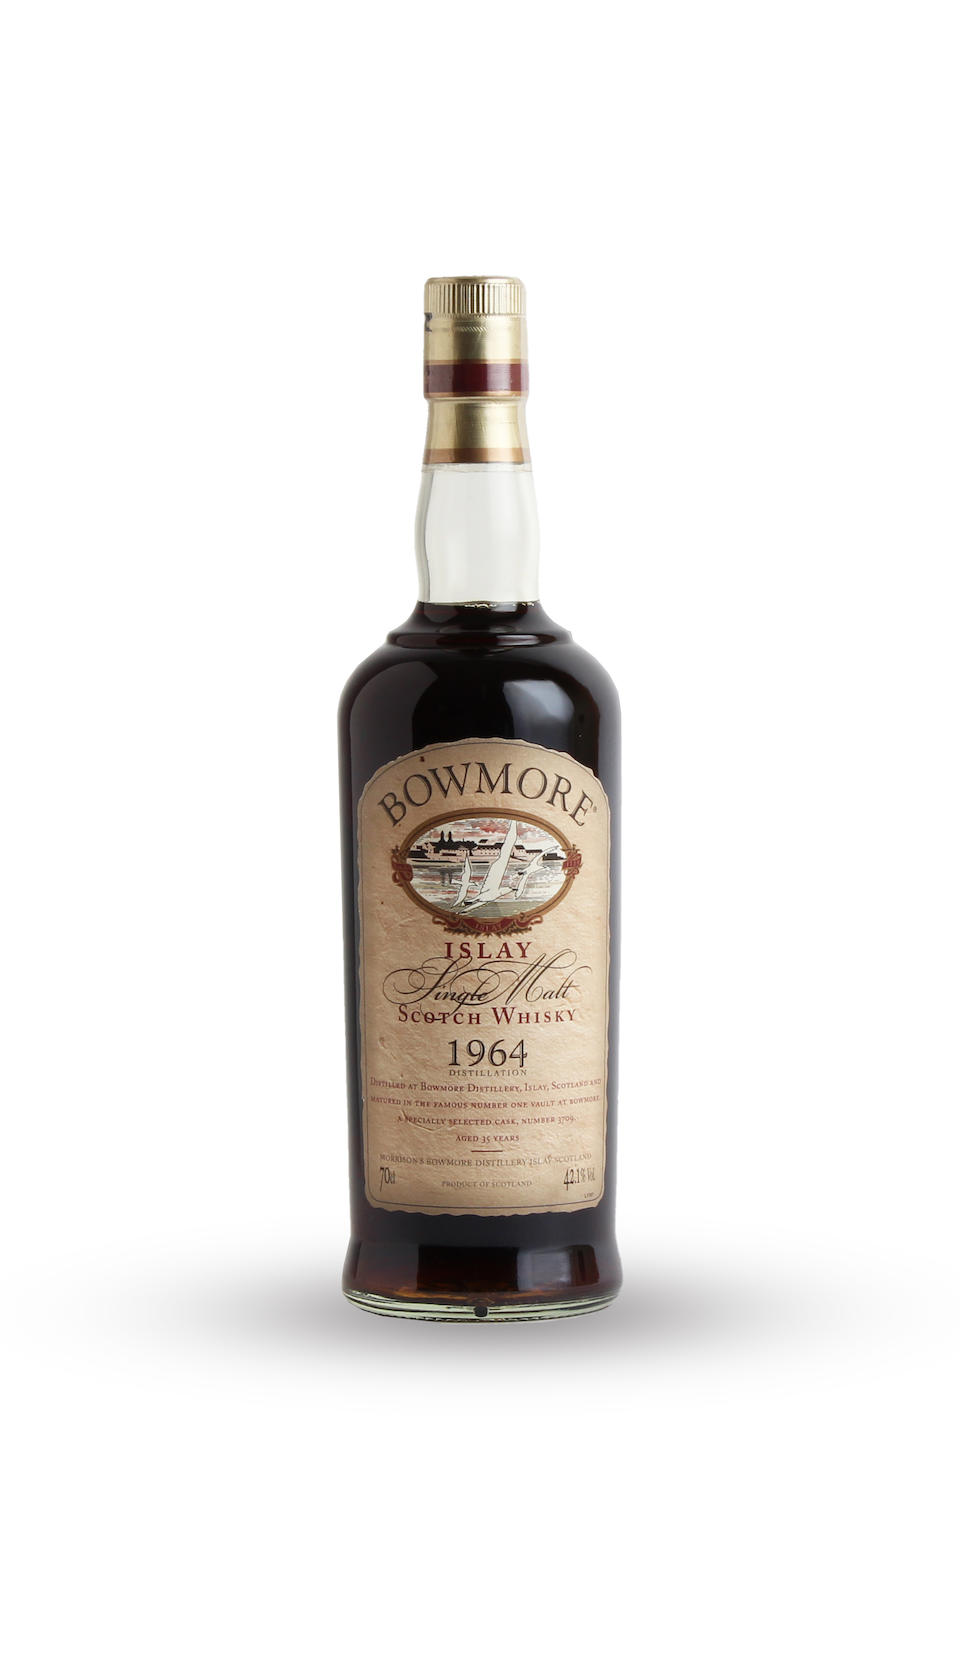 Bowmore-35 year old-1964